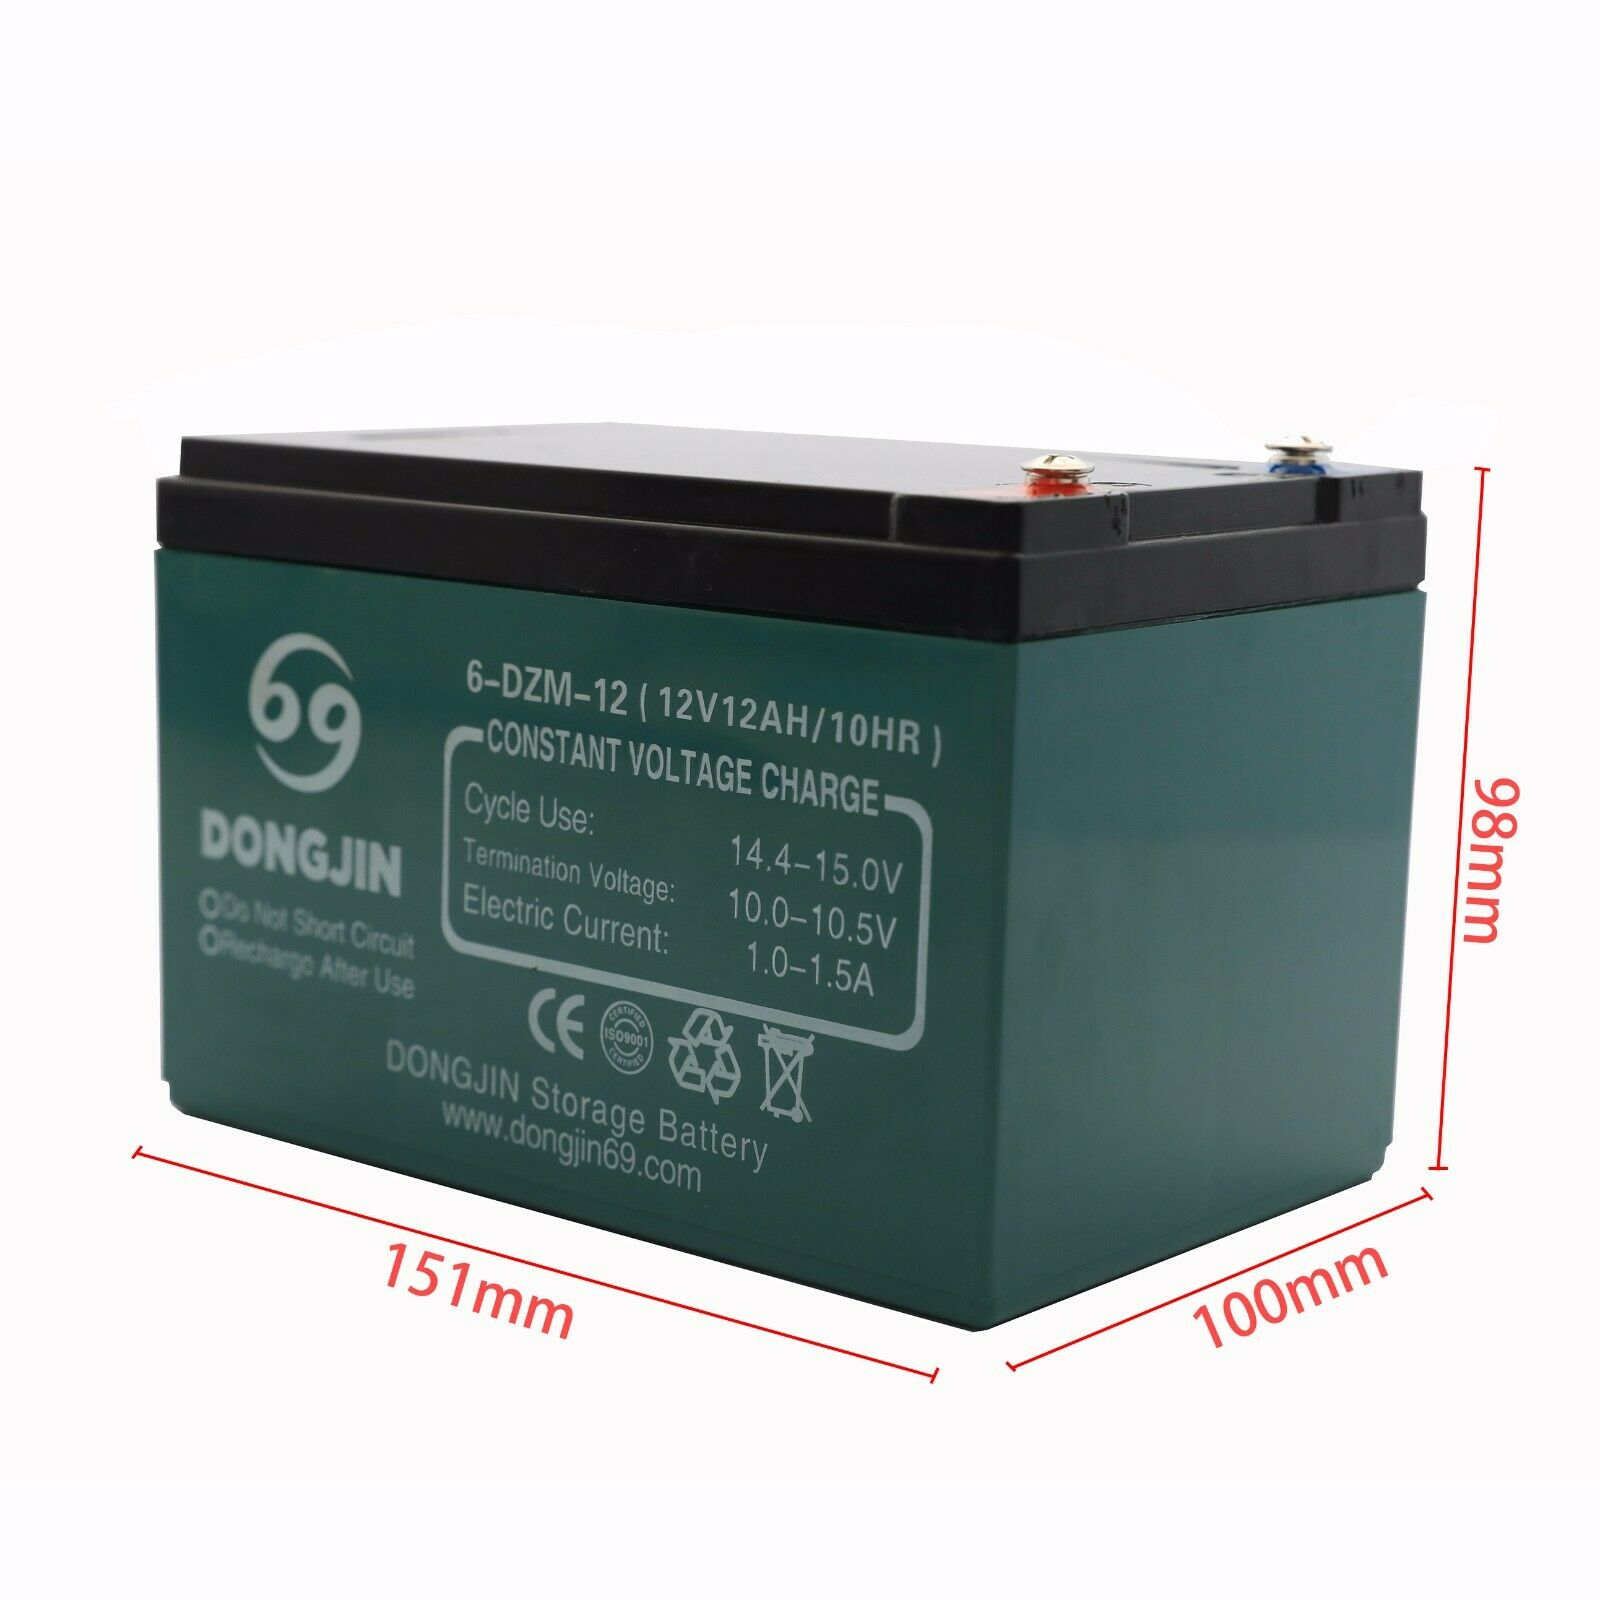 12V 12Ah 6-DZM-12 Rechargeable Battery for Mobility Scooter Electric Tricycle